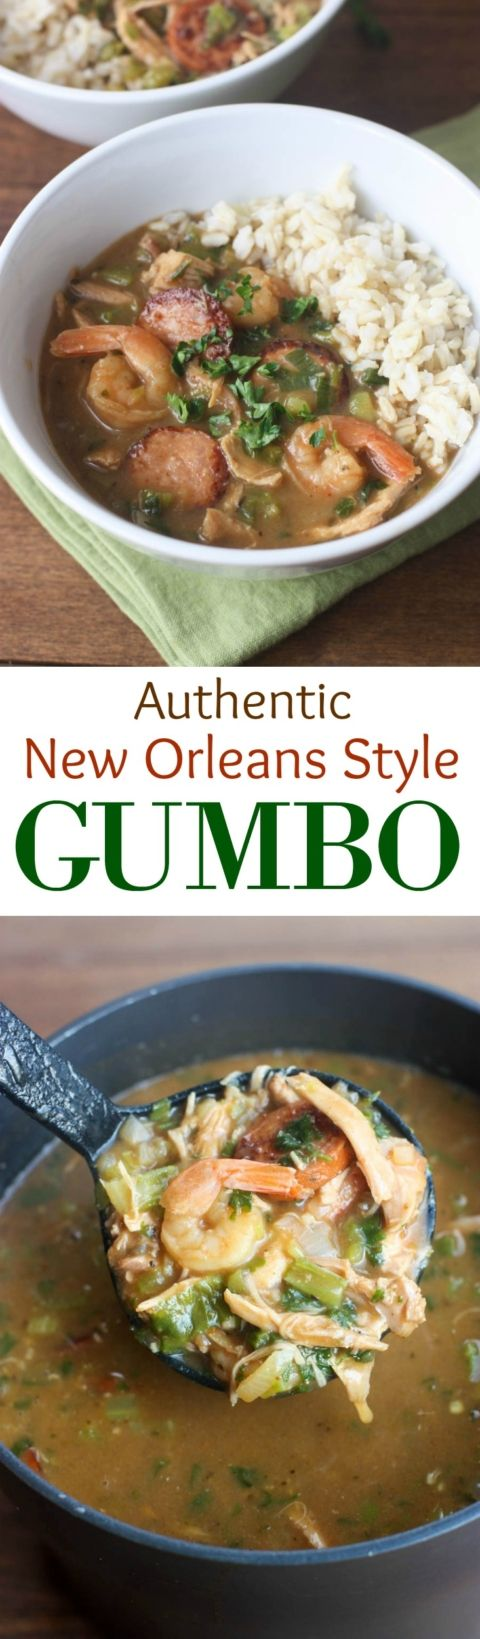 Authentic New Orleans Style Gumbo | Tastes Better From Scratch